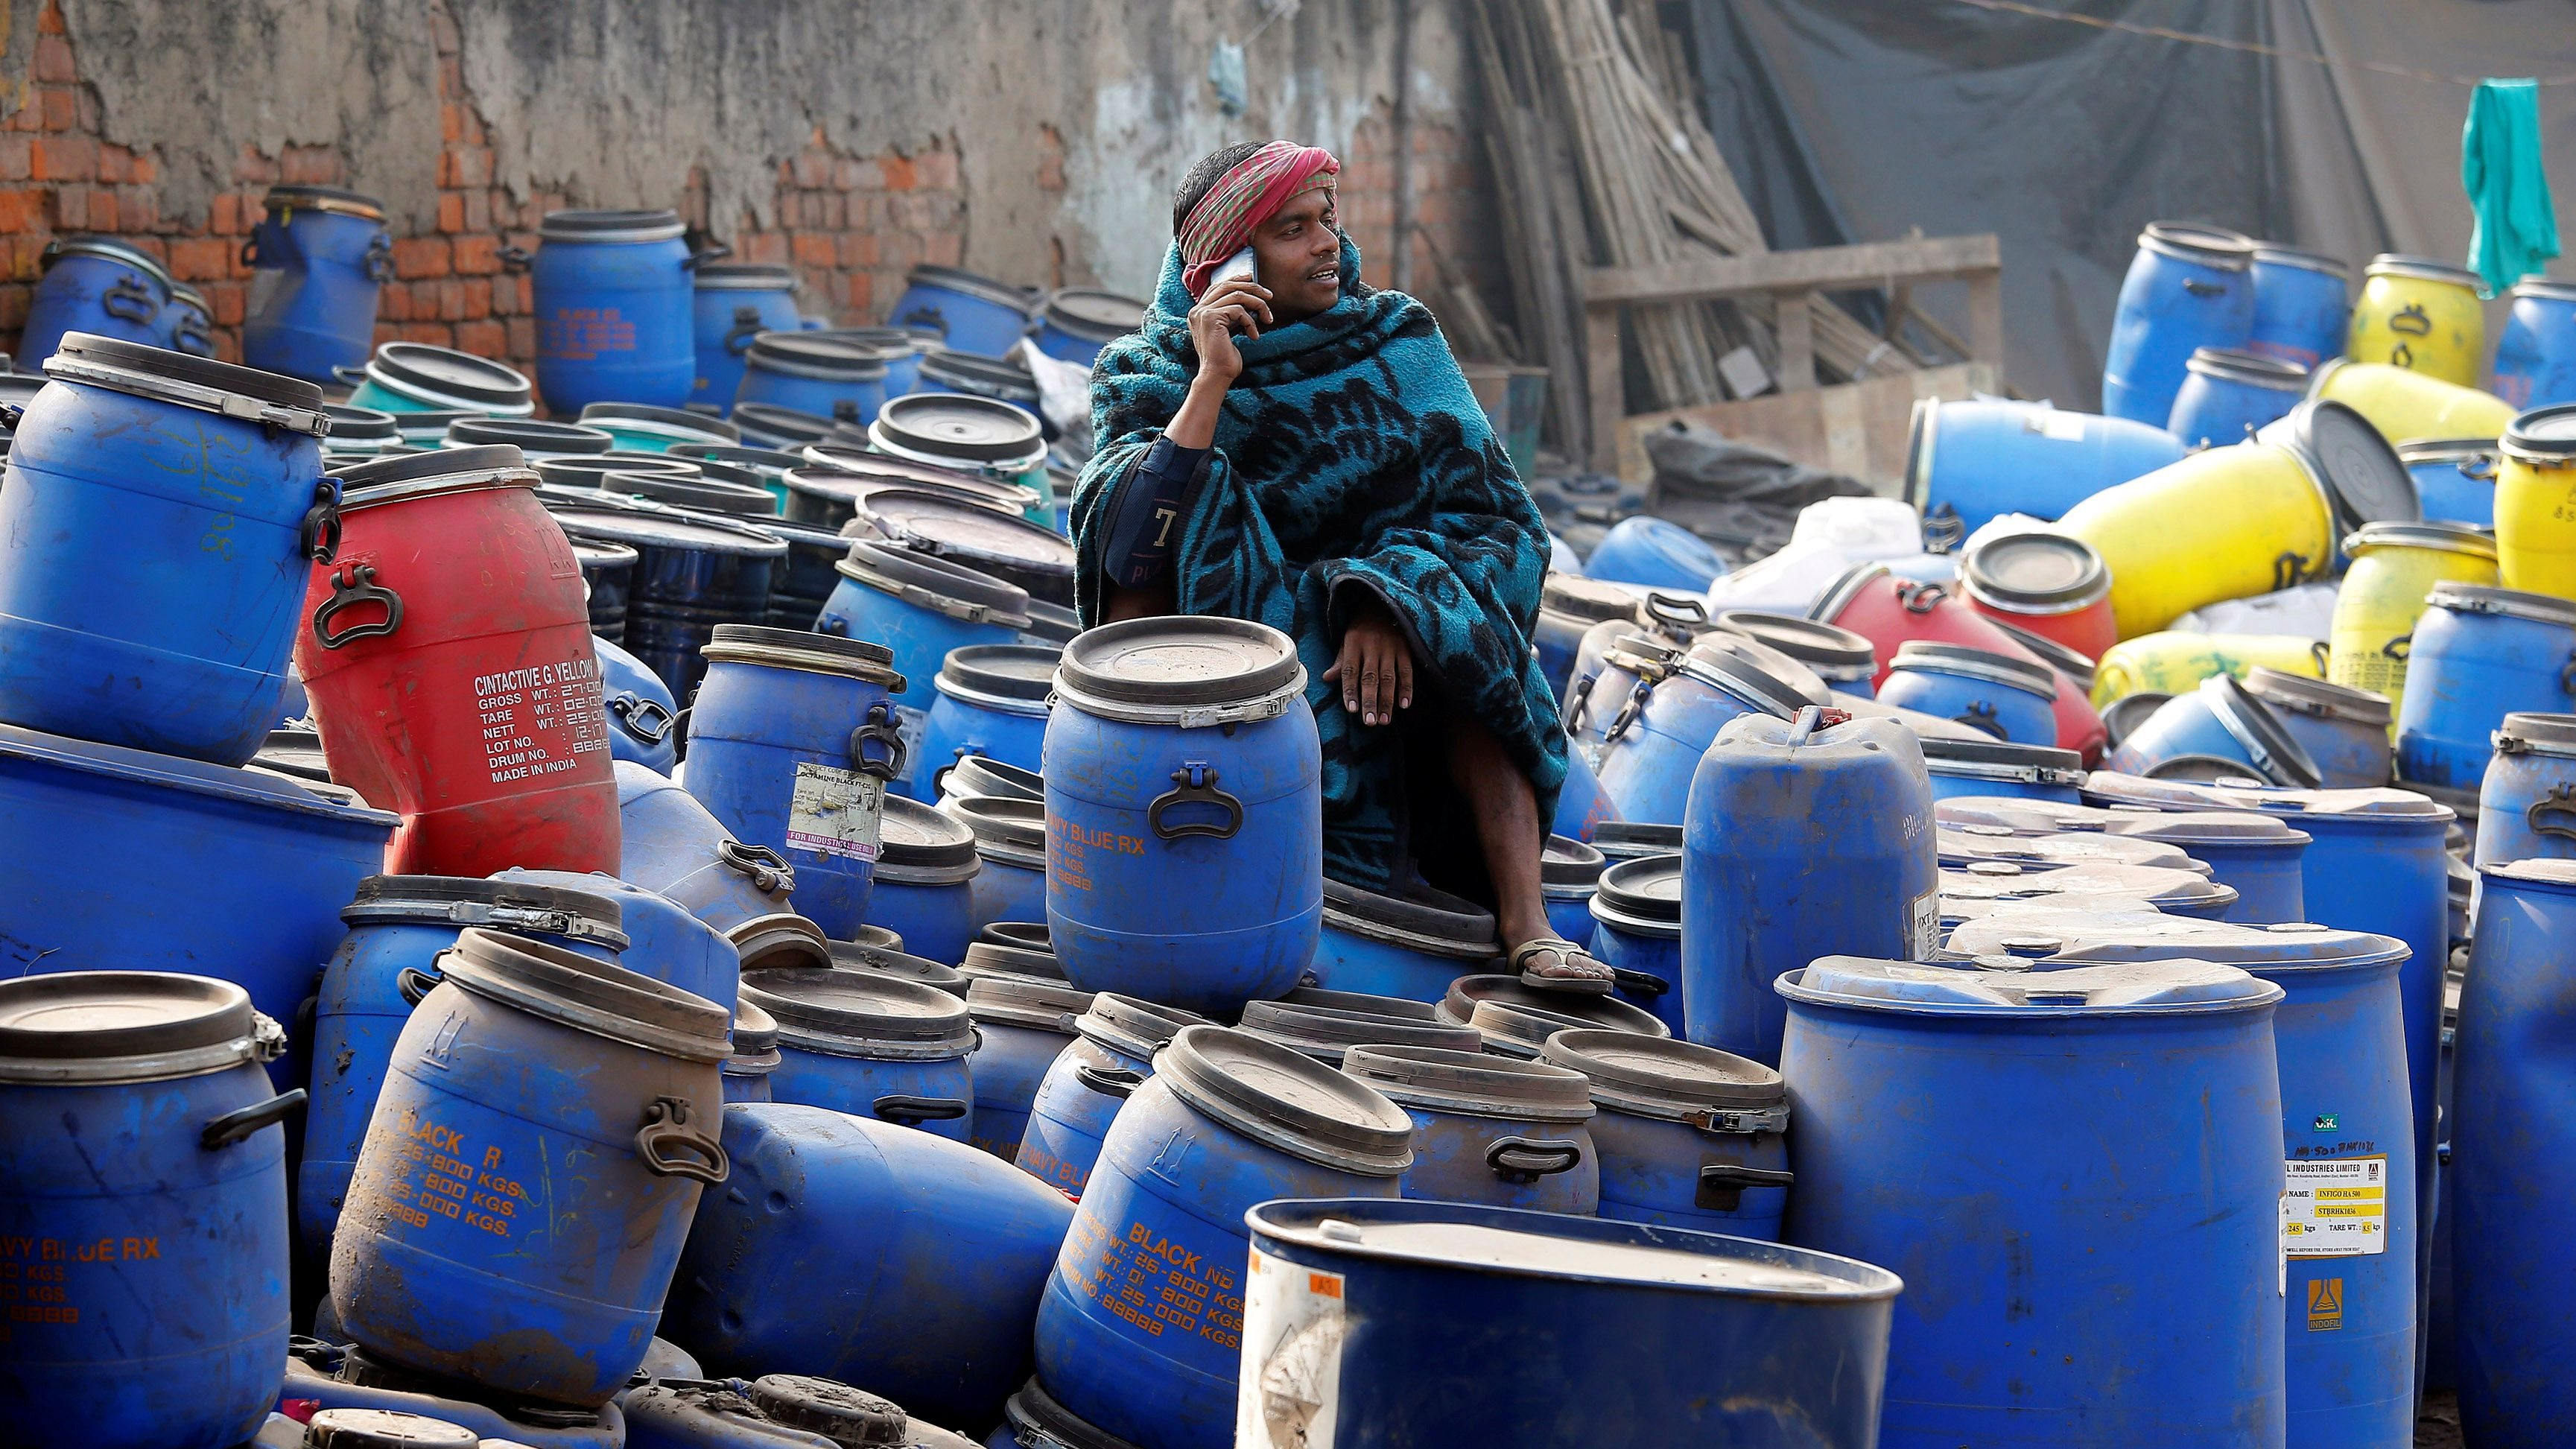 A worker speaks on his phone as he sits on chemical containers near a wholesale market on a winter morning in Kolkata, India, January 4, 2018. REUTERS/Rupak De Chowdhuri - RC11044DF6B0